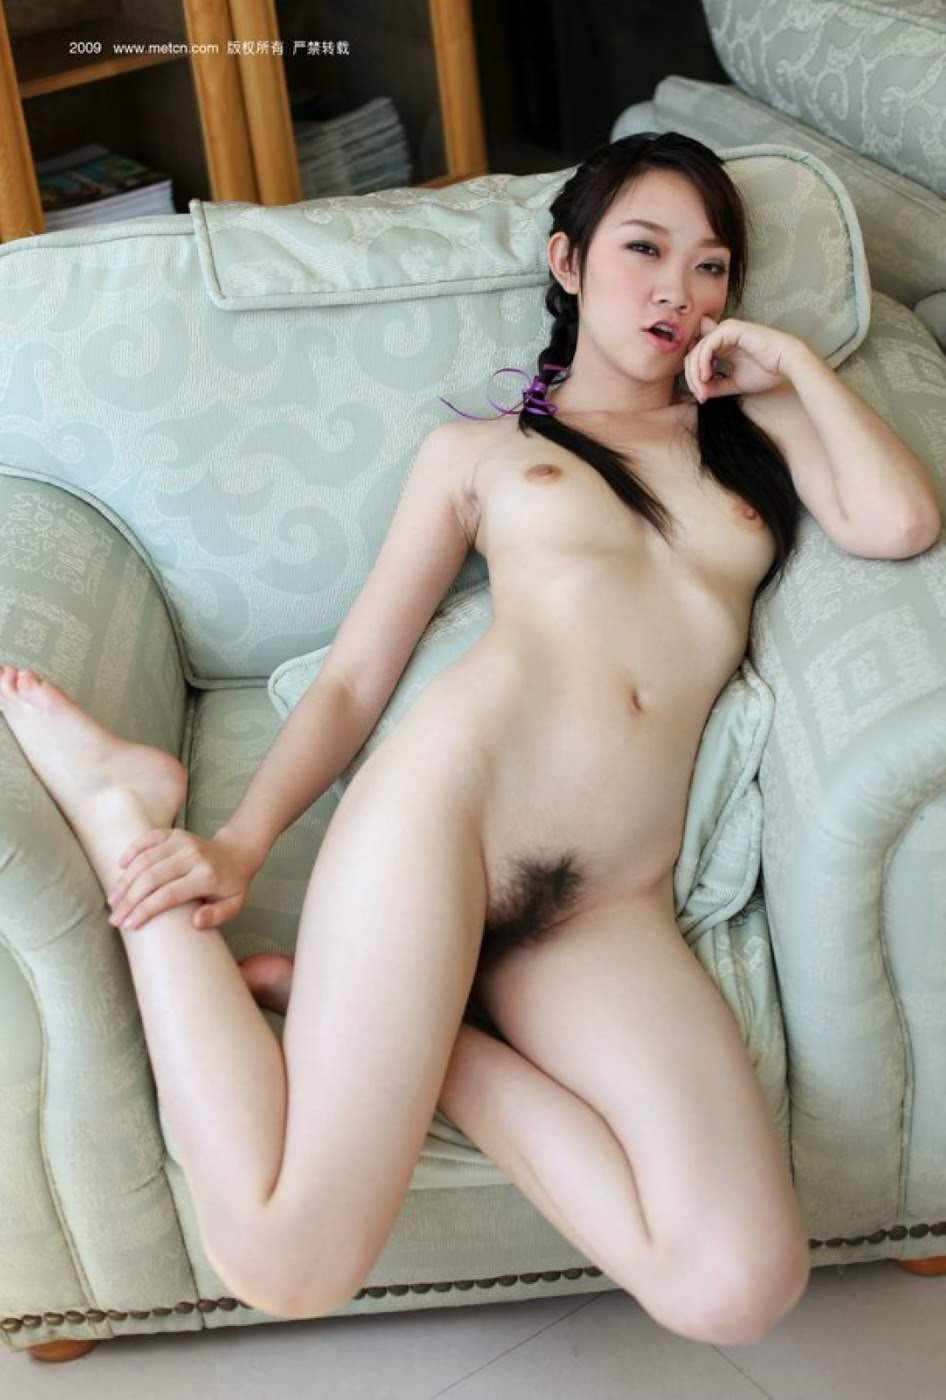 MetCN Naked_Girls-068-2009-06-11-Yu-Wen re